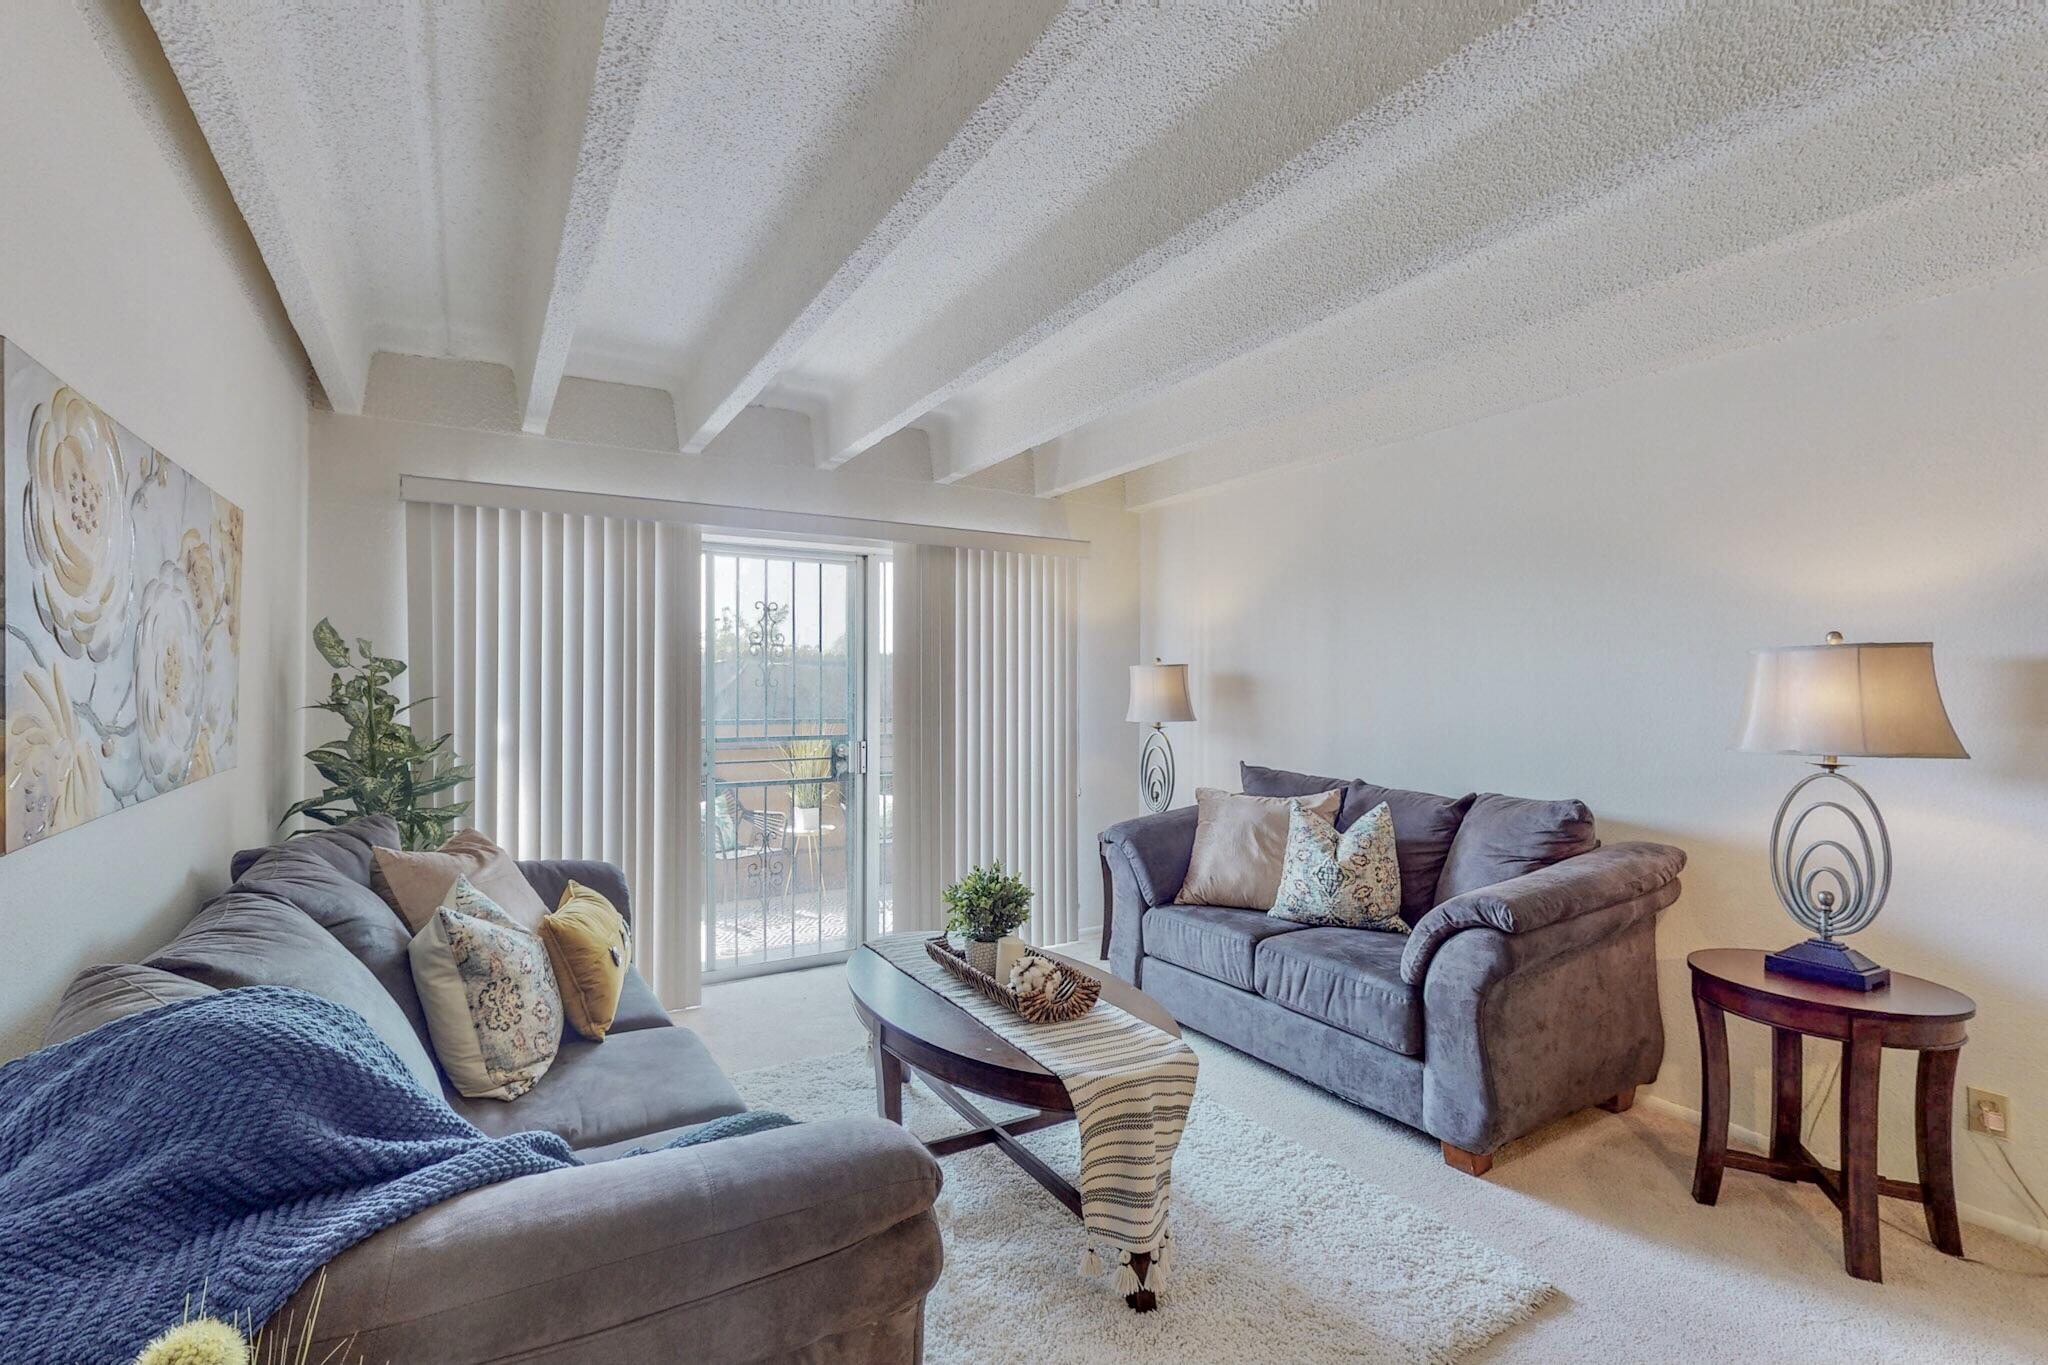 Bright and Cheery condo! This 2 bedroom, 1 bathroom cream puff has large bedrooms, an extended bathroom and a cozy balcony. Natural light pours in through the windows and sliding balcony doors. This gated condominium has a pool and a gorgeous large grassy courtyard. The HOA includes gas, water, all exterior maintenance, pool, conference room, on-site laundry facilities, extra storage space, and the use of the pool. Perfect cozy condo! Schedule your showing today!